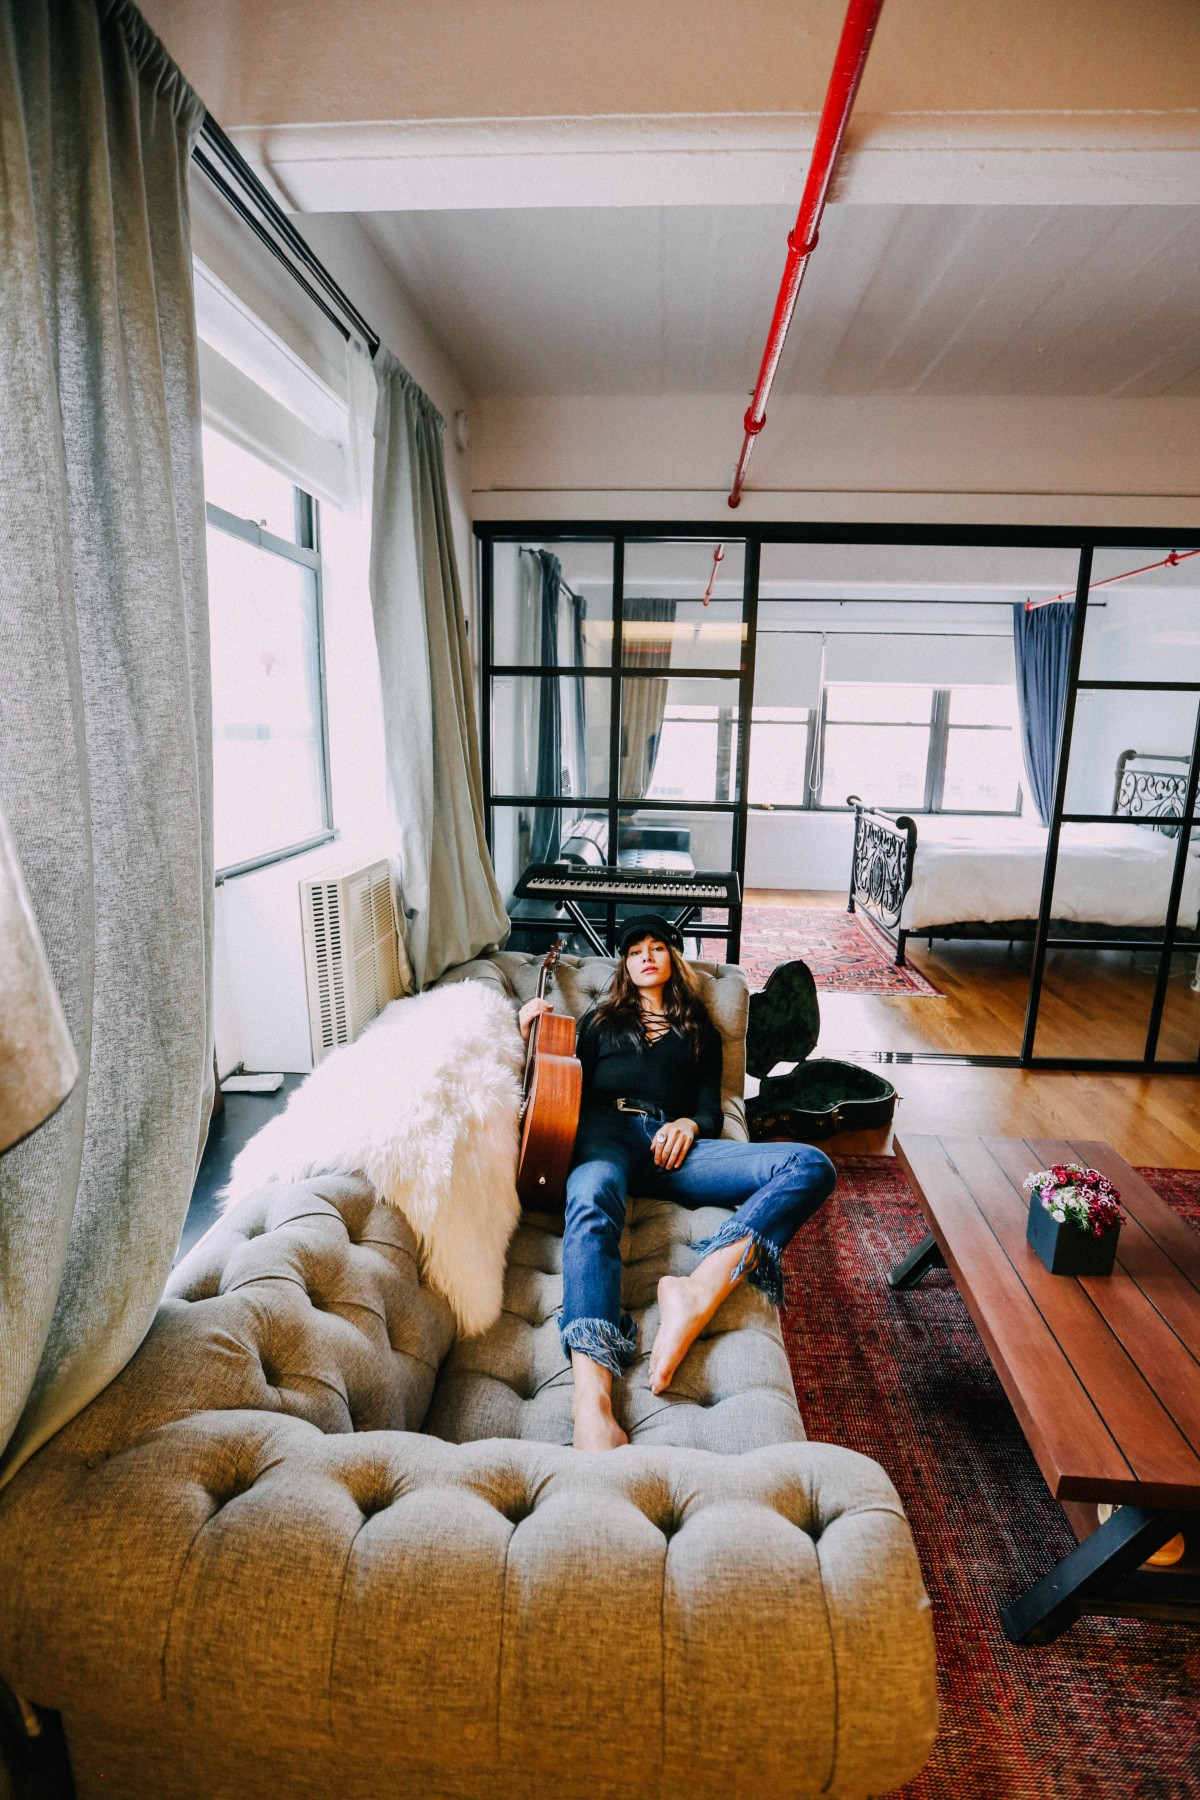 Most comfortable sofa ever - Joybird Couch Natalie Suarez Dumbo Loft Off Duty